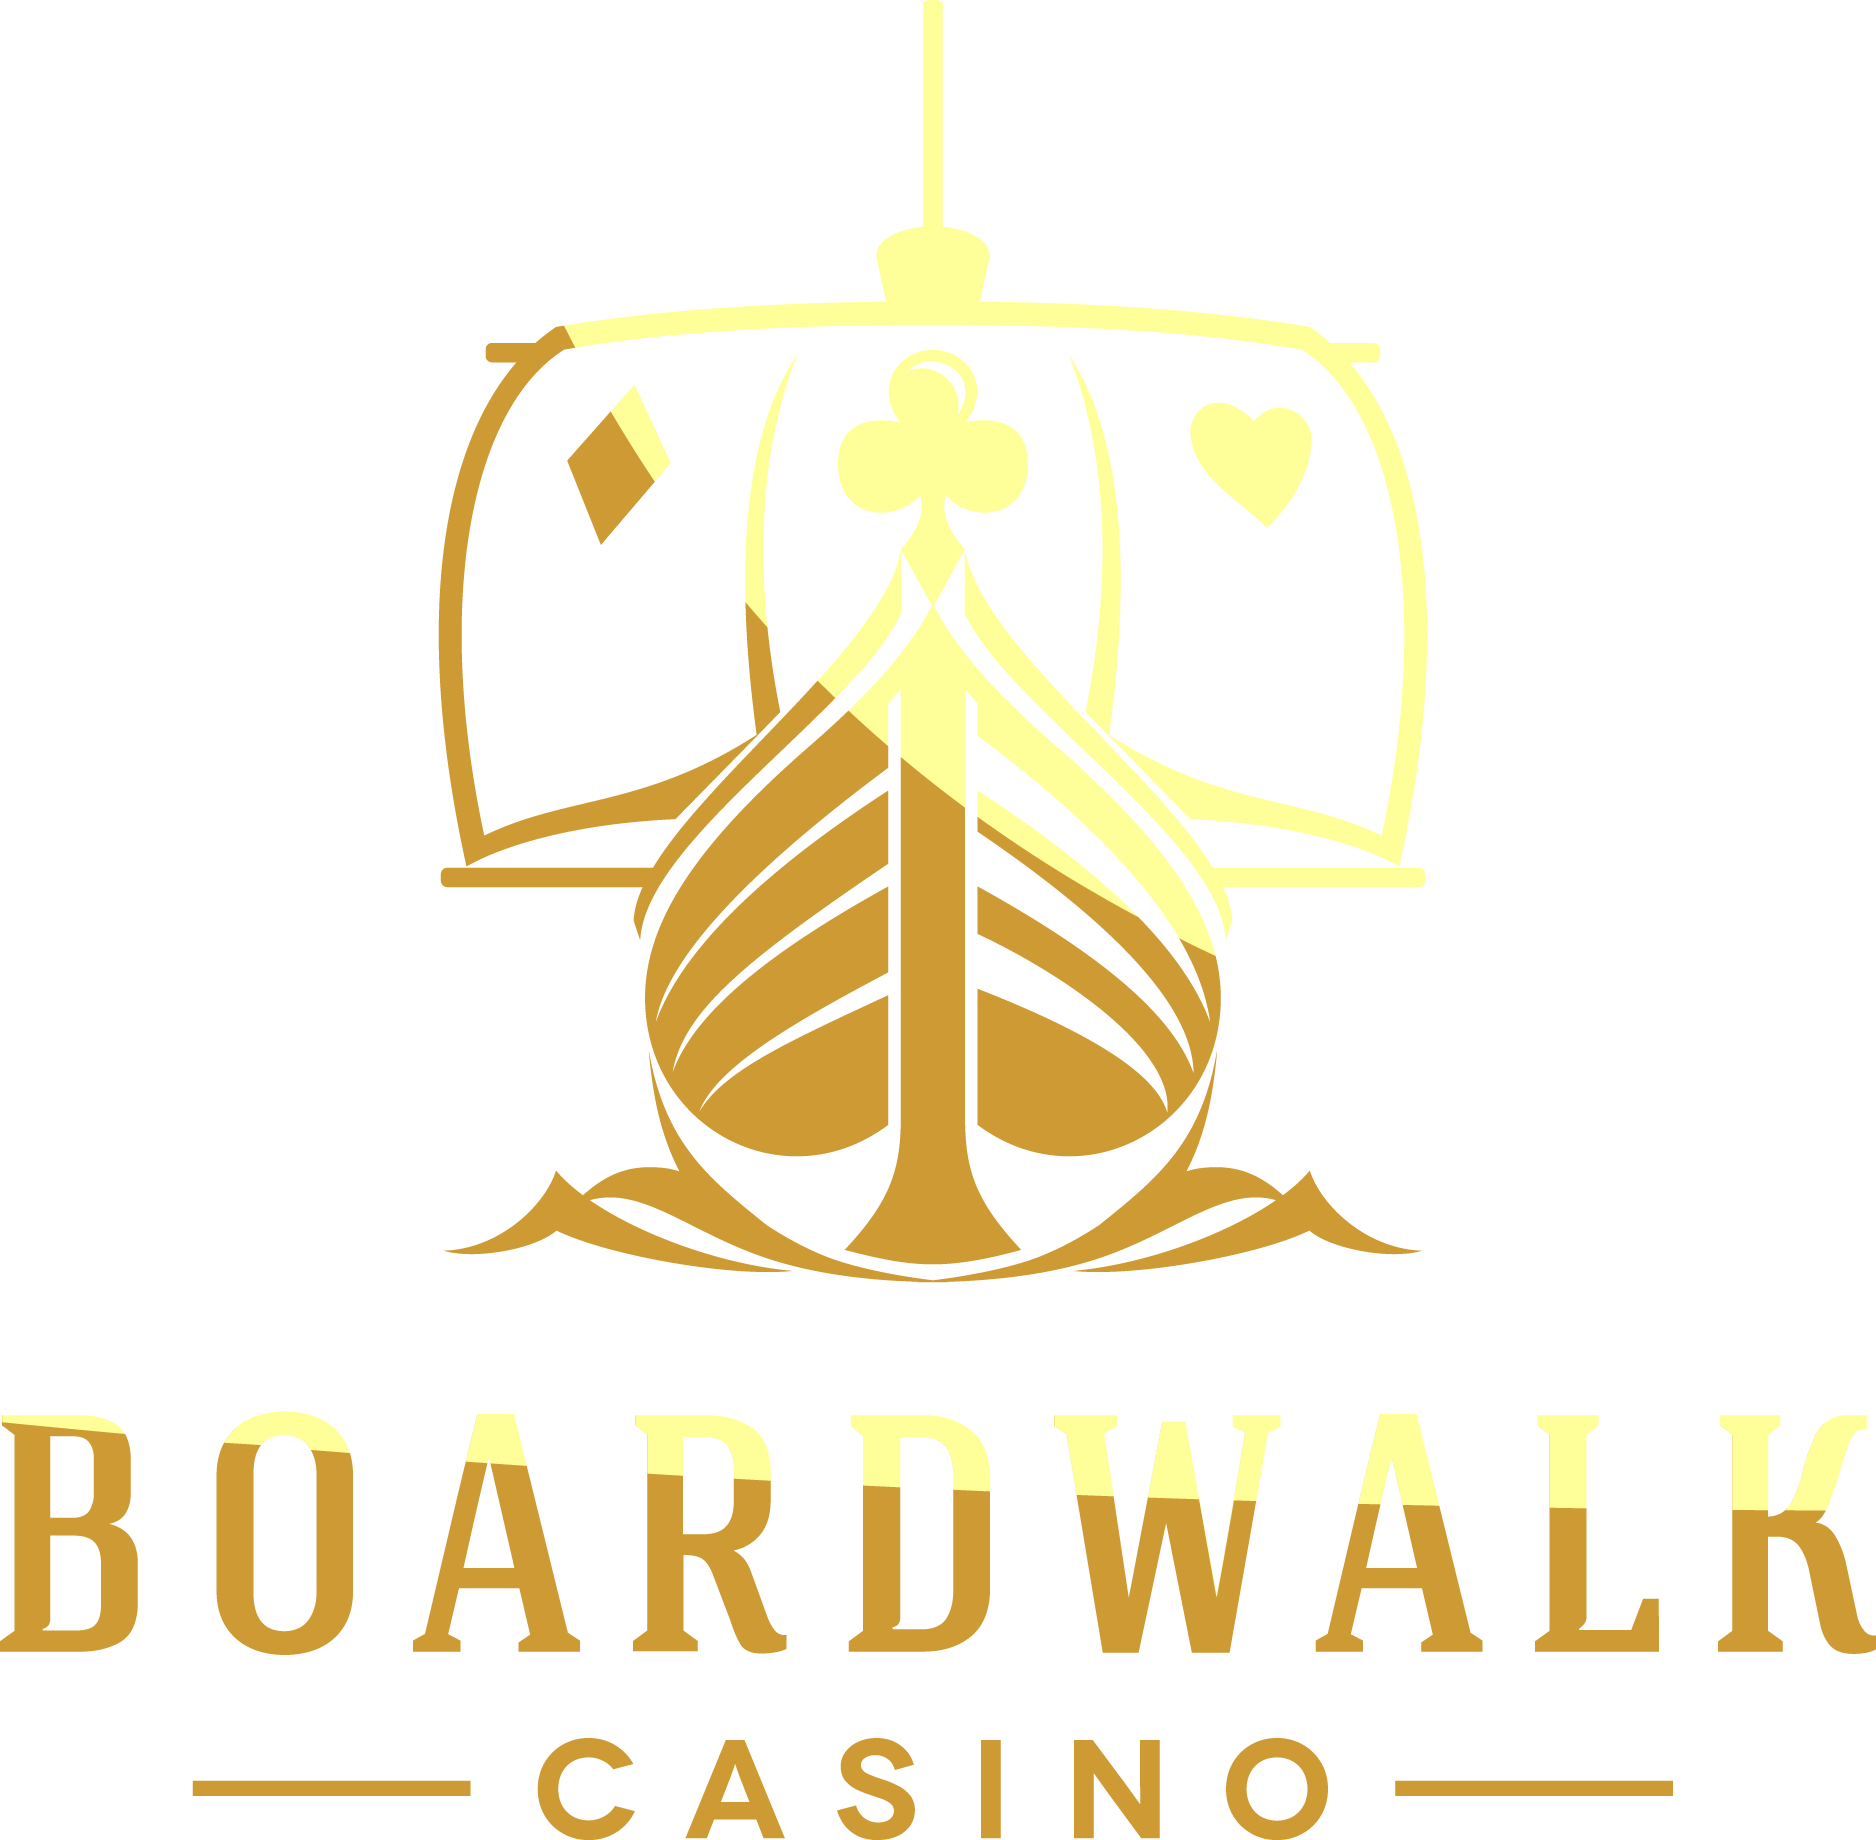 Boardwalk Casino in the Caribbean needs a new, powerful, and bold logo